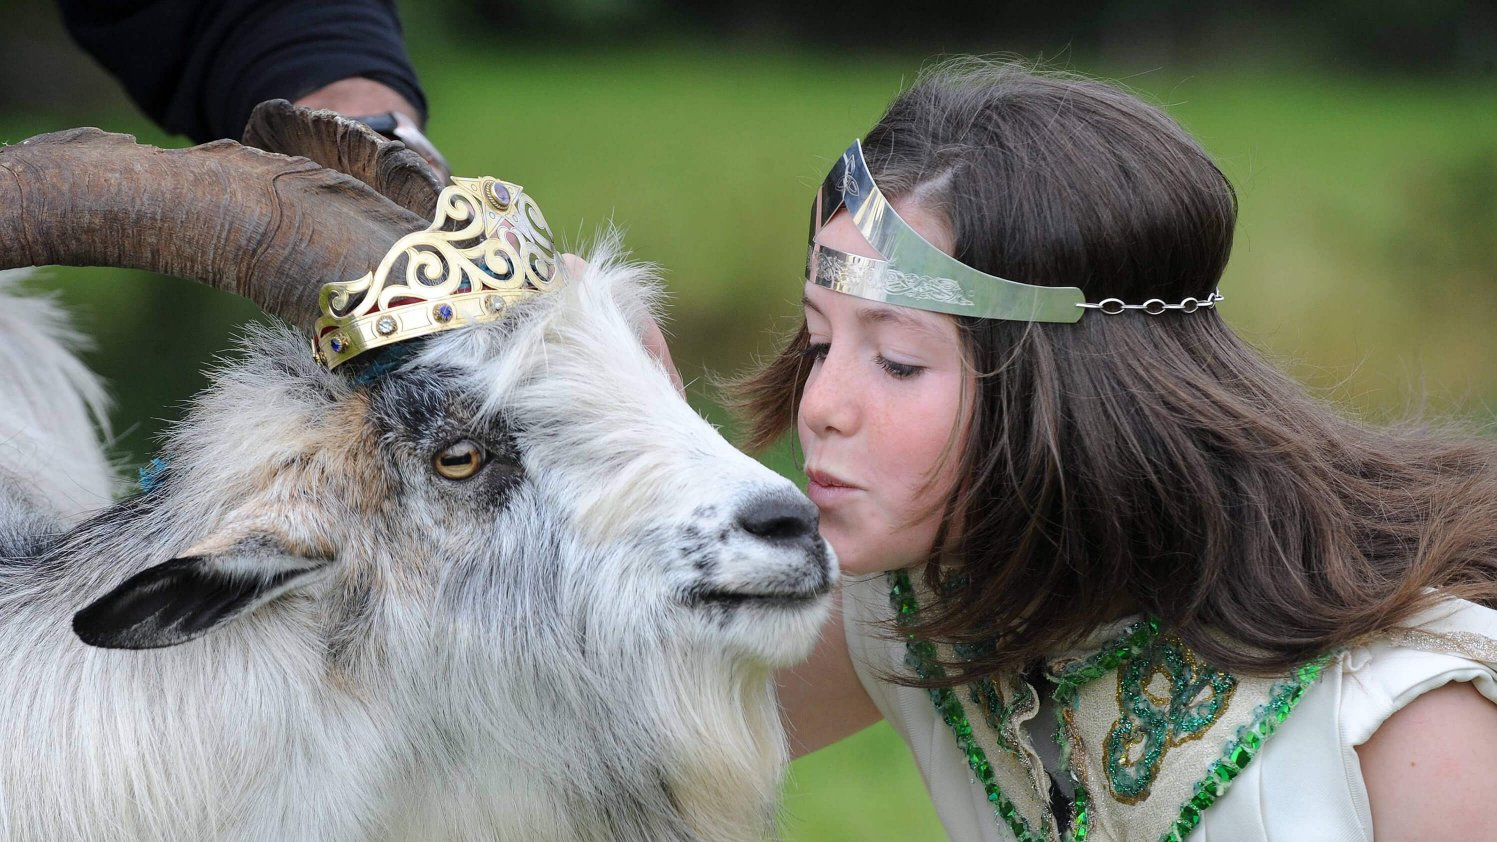 A young girl weating a tiara kissing a goat wearing a crown. Nothing weird about this.